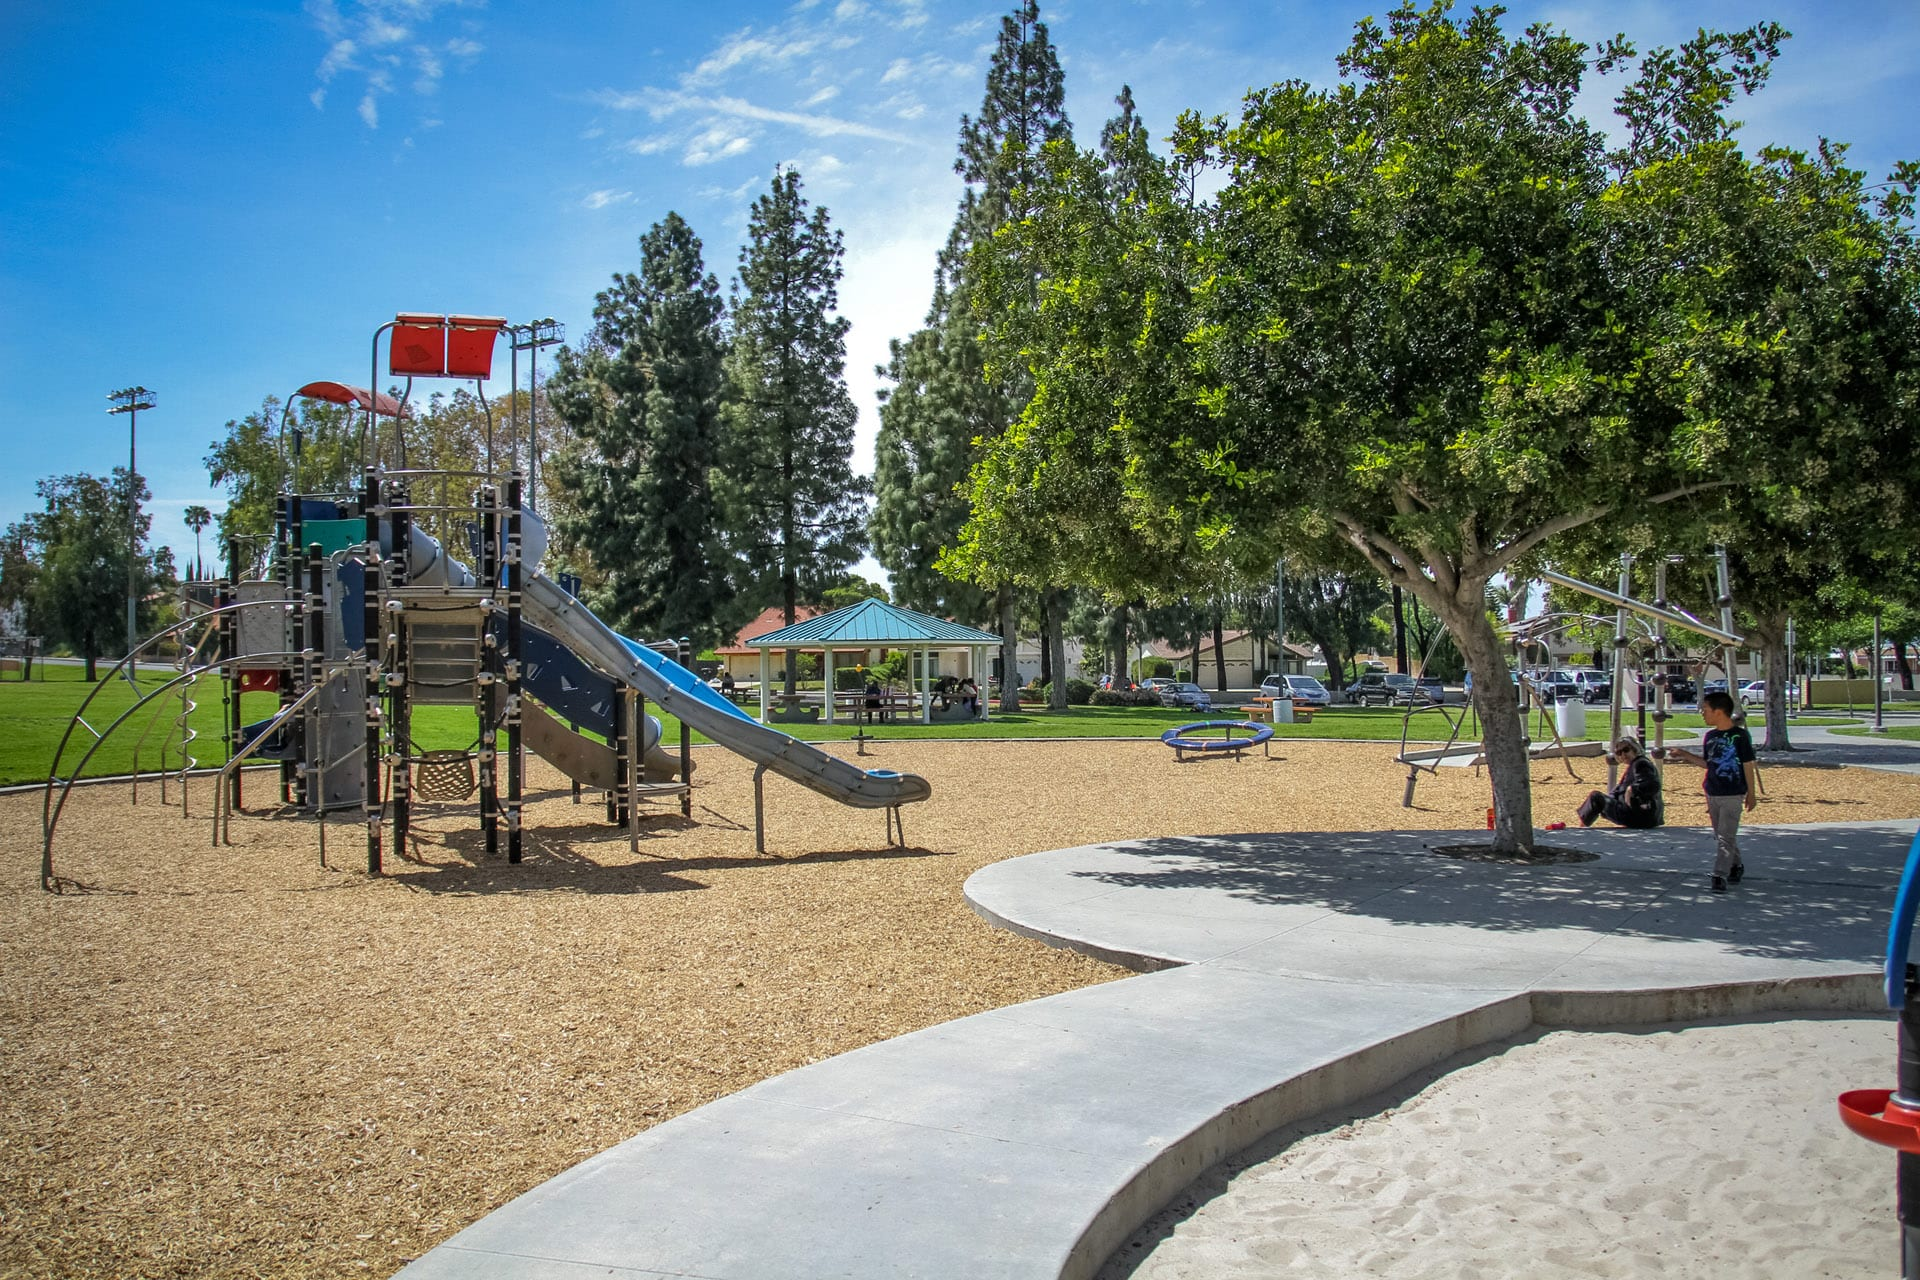 Playground next to a concrete walkway